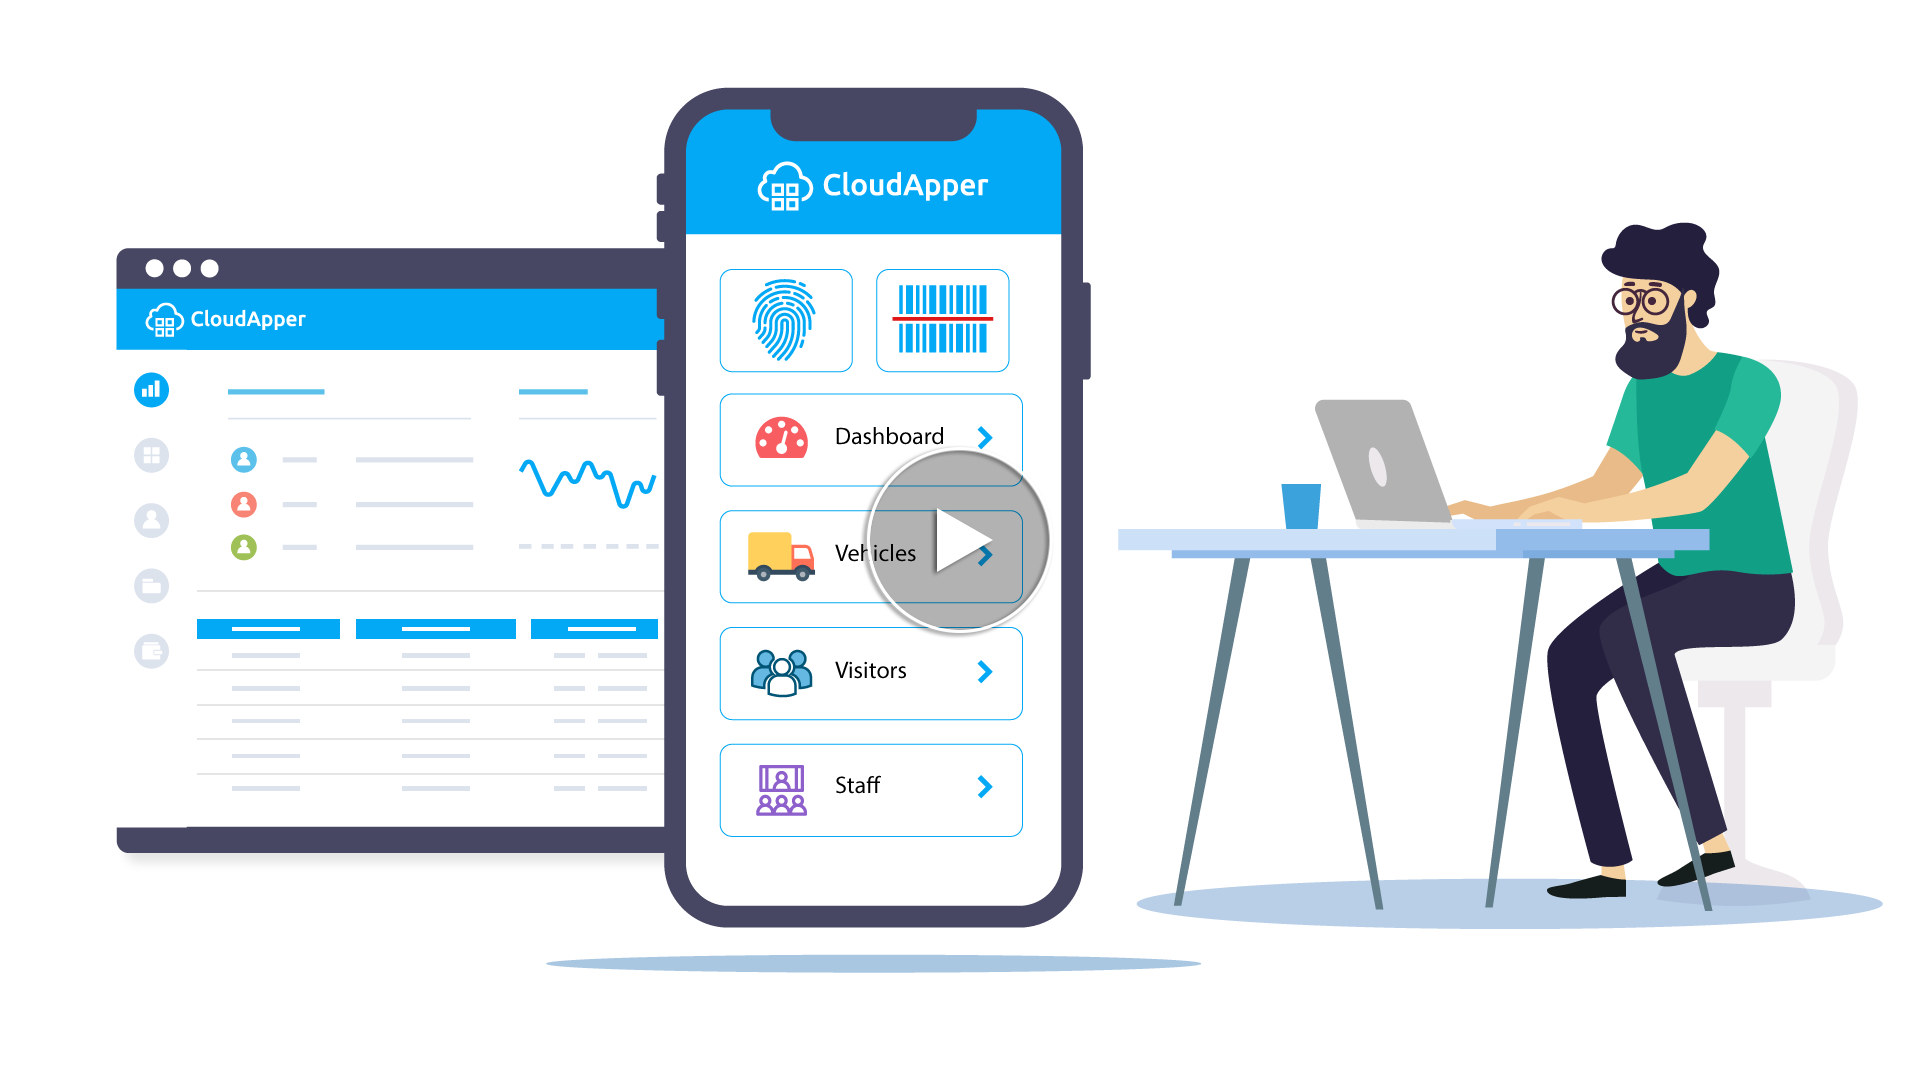 Video cloudApper Rapid Cloud Software Development Toolkit